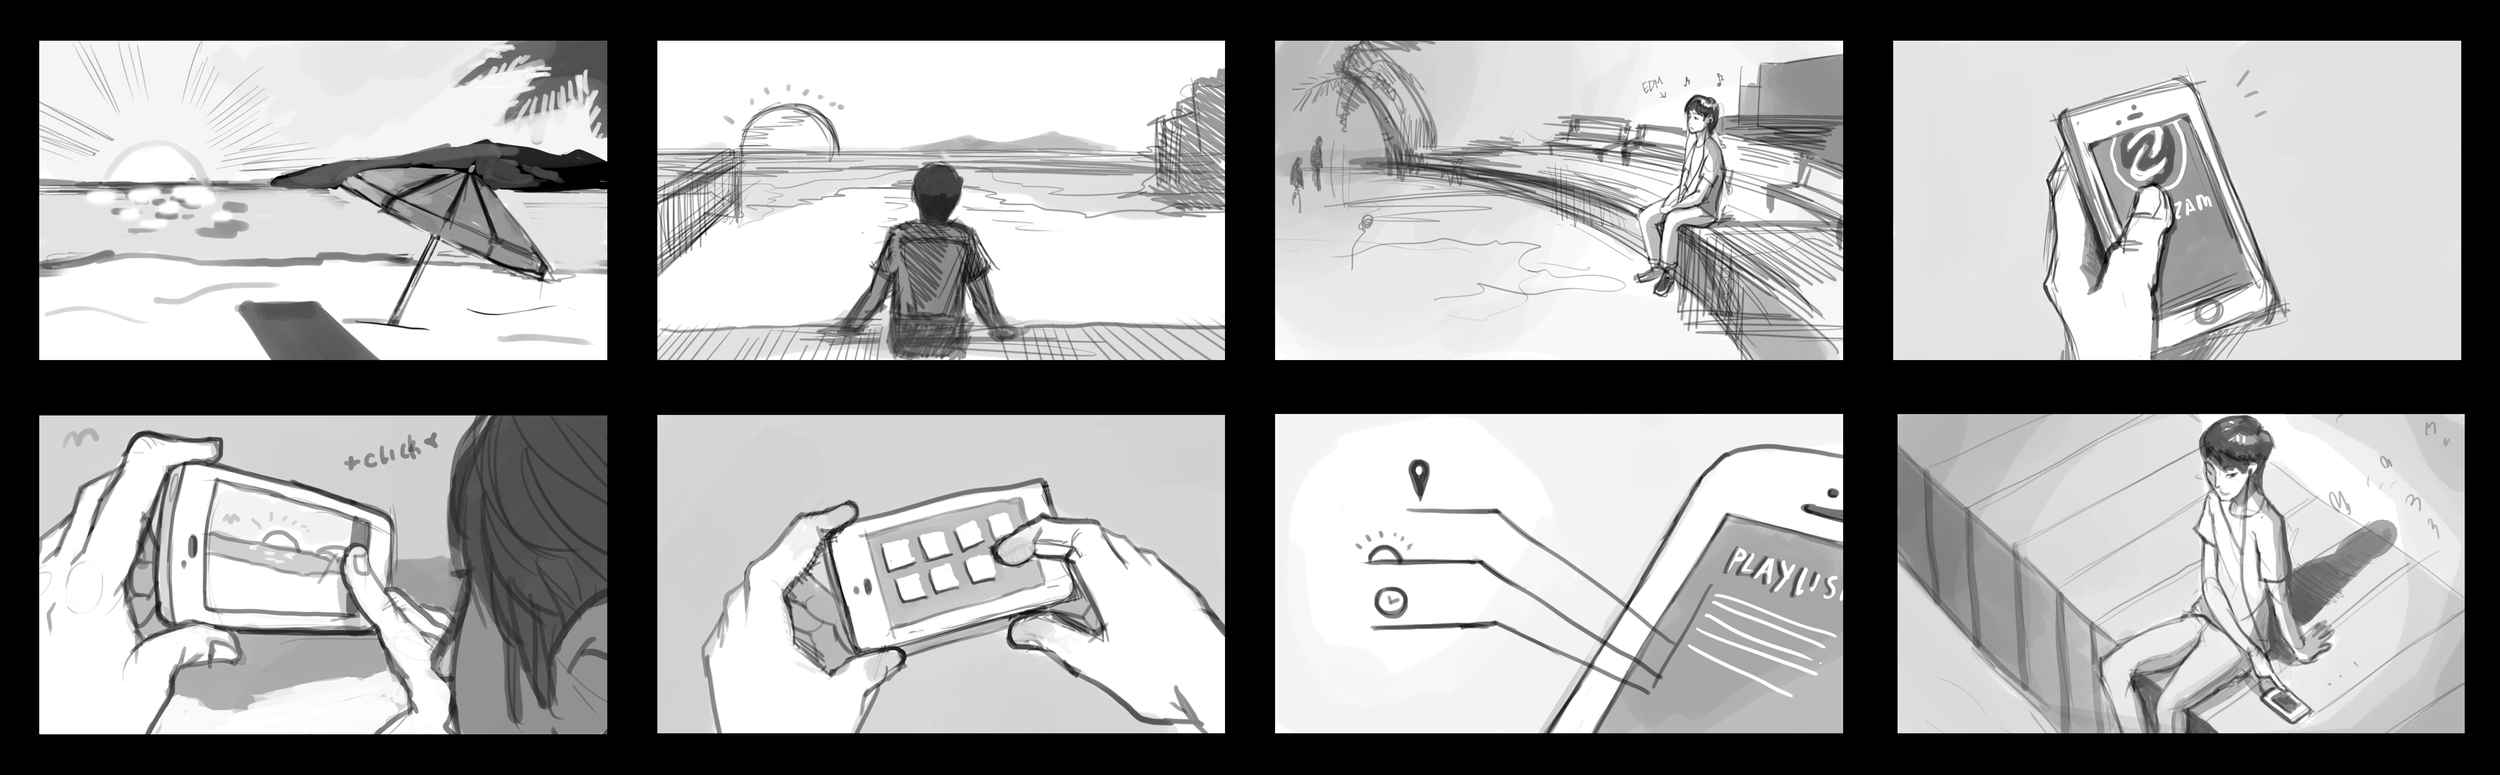 Storyboard_conceptfinal.png